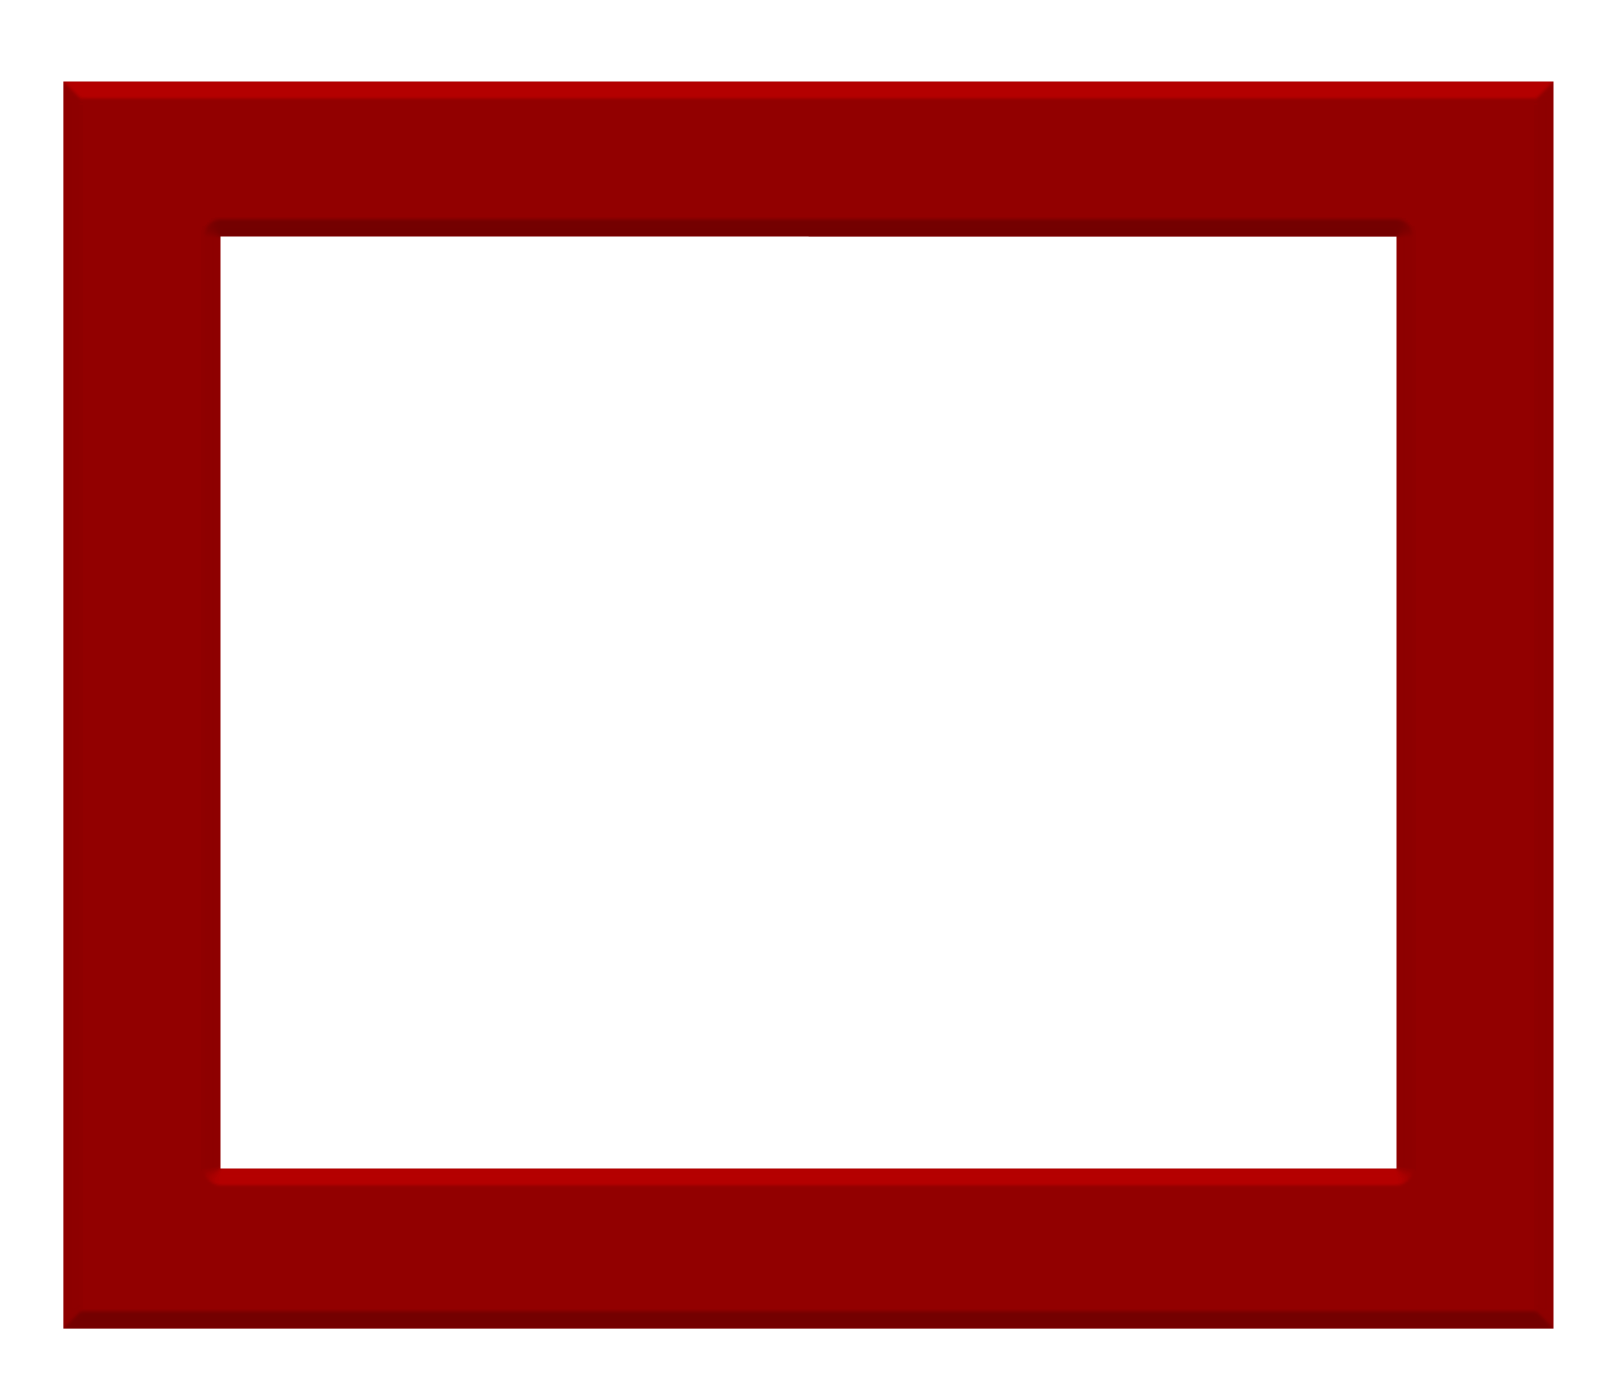 Black borders png. Square frame unique squares